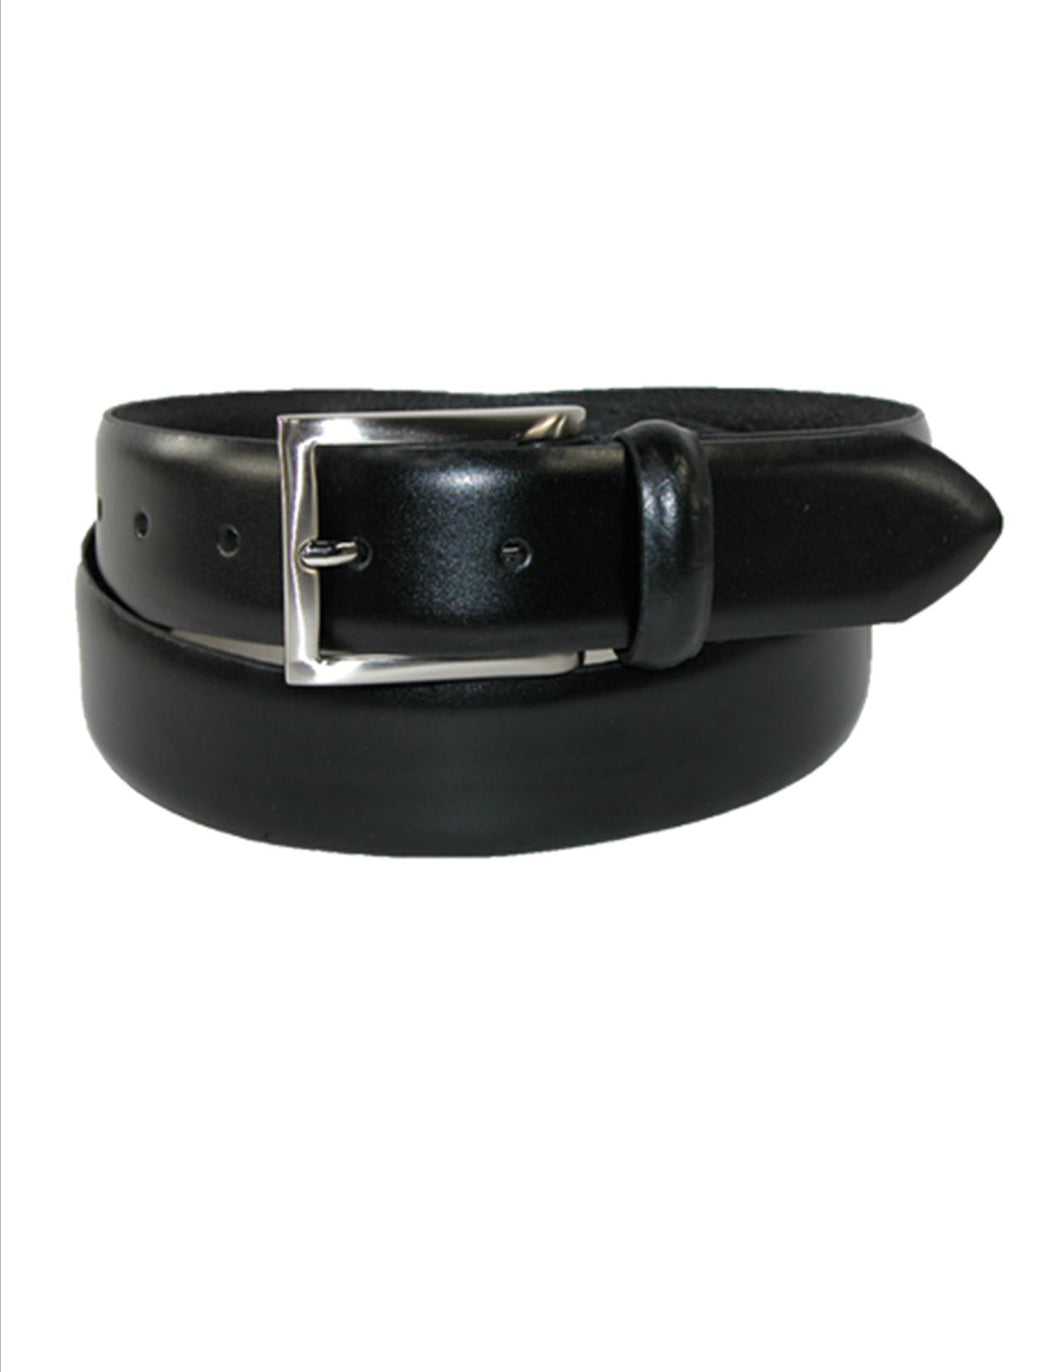 UNISEX YOUTH BELT